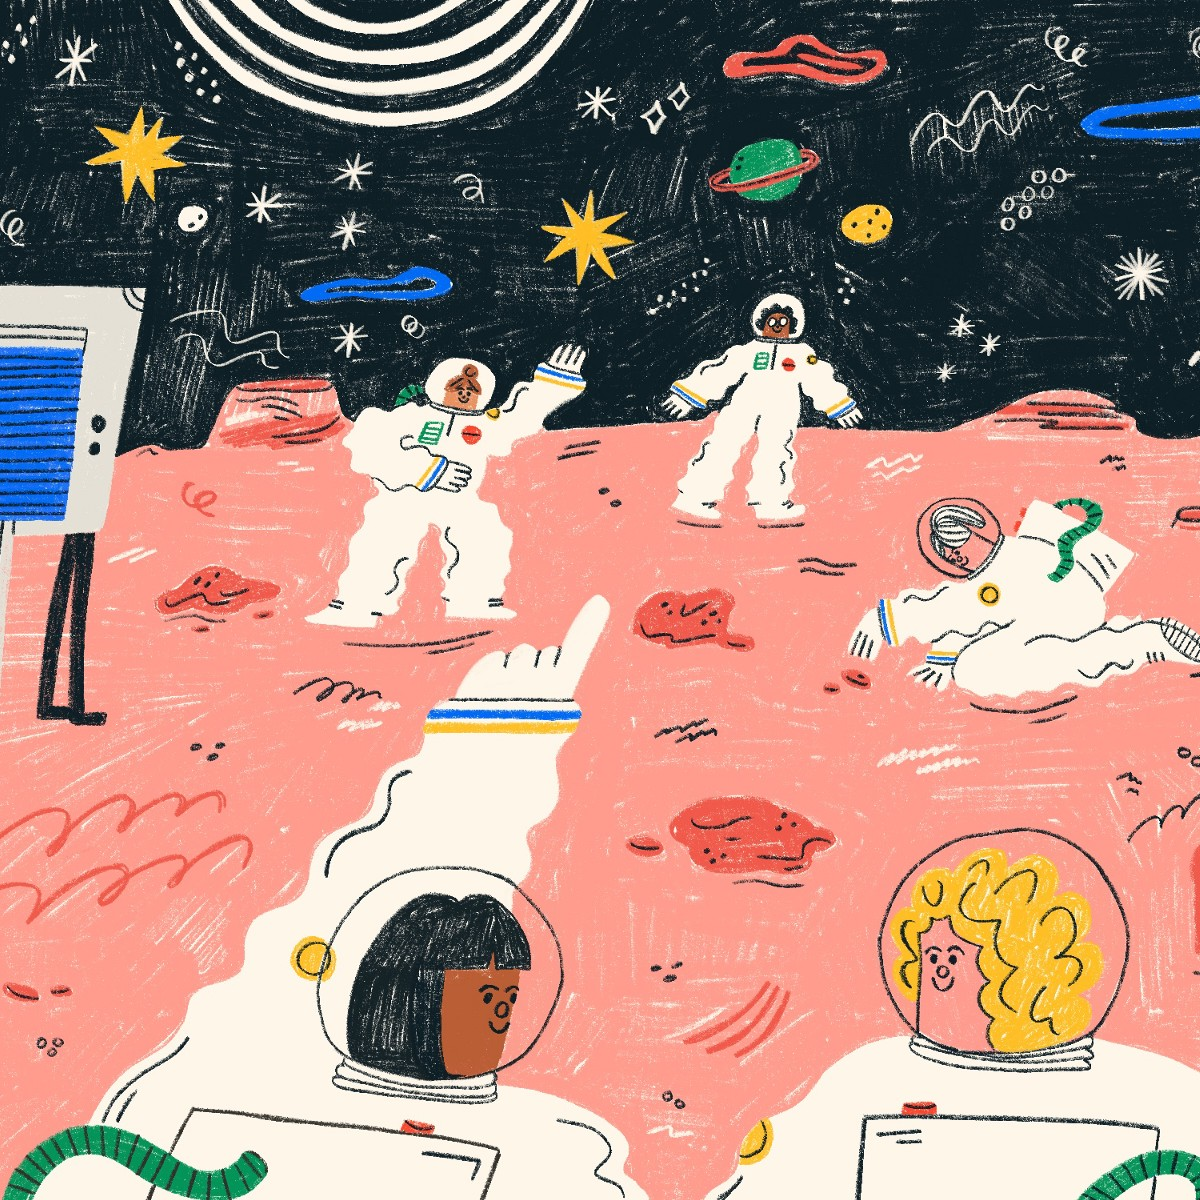 Why Women's Bodies Are Better Suited for Space Travel